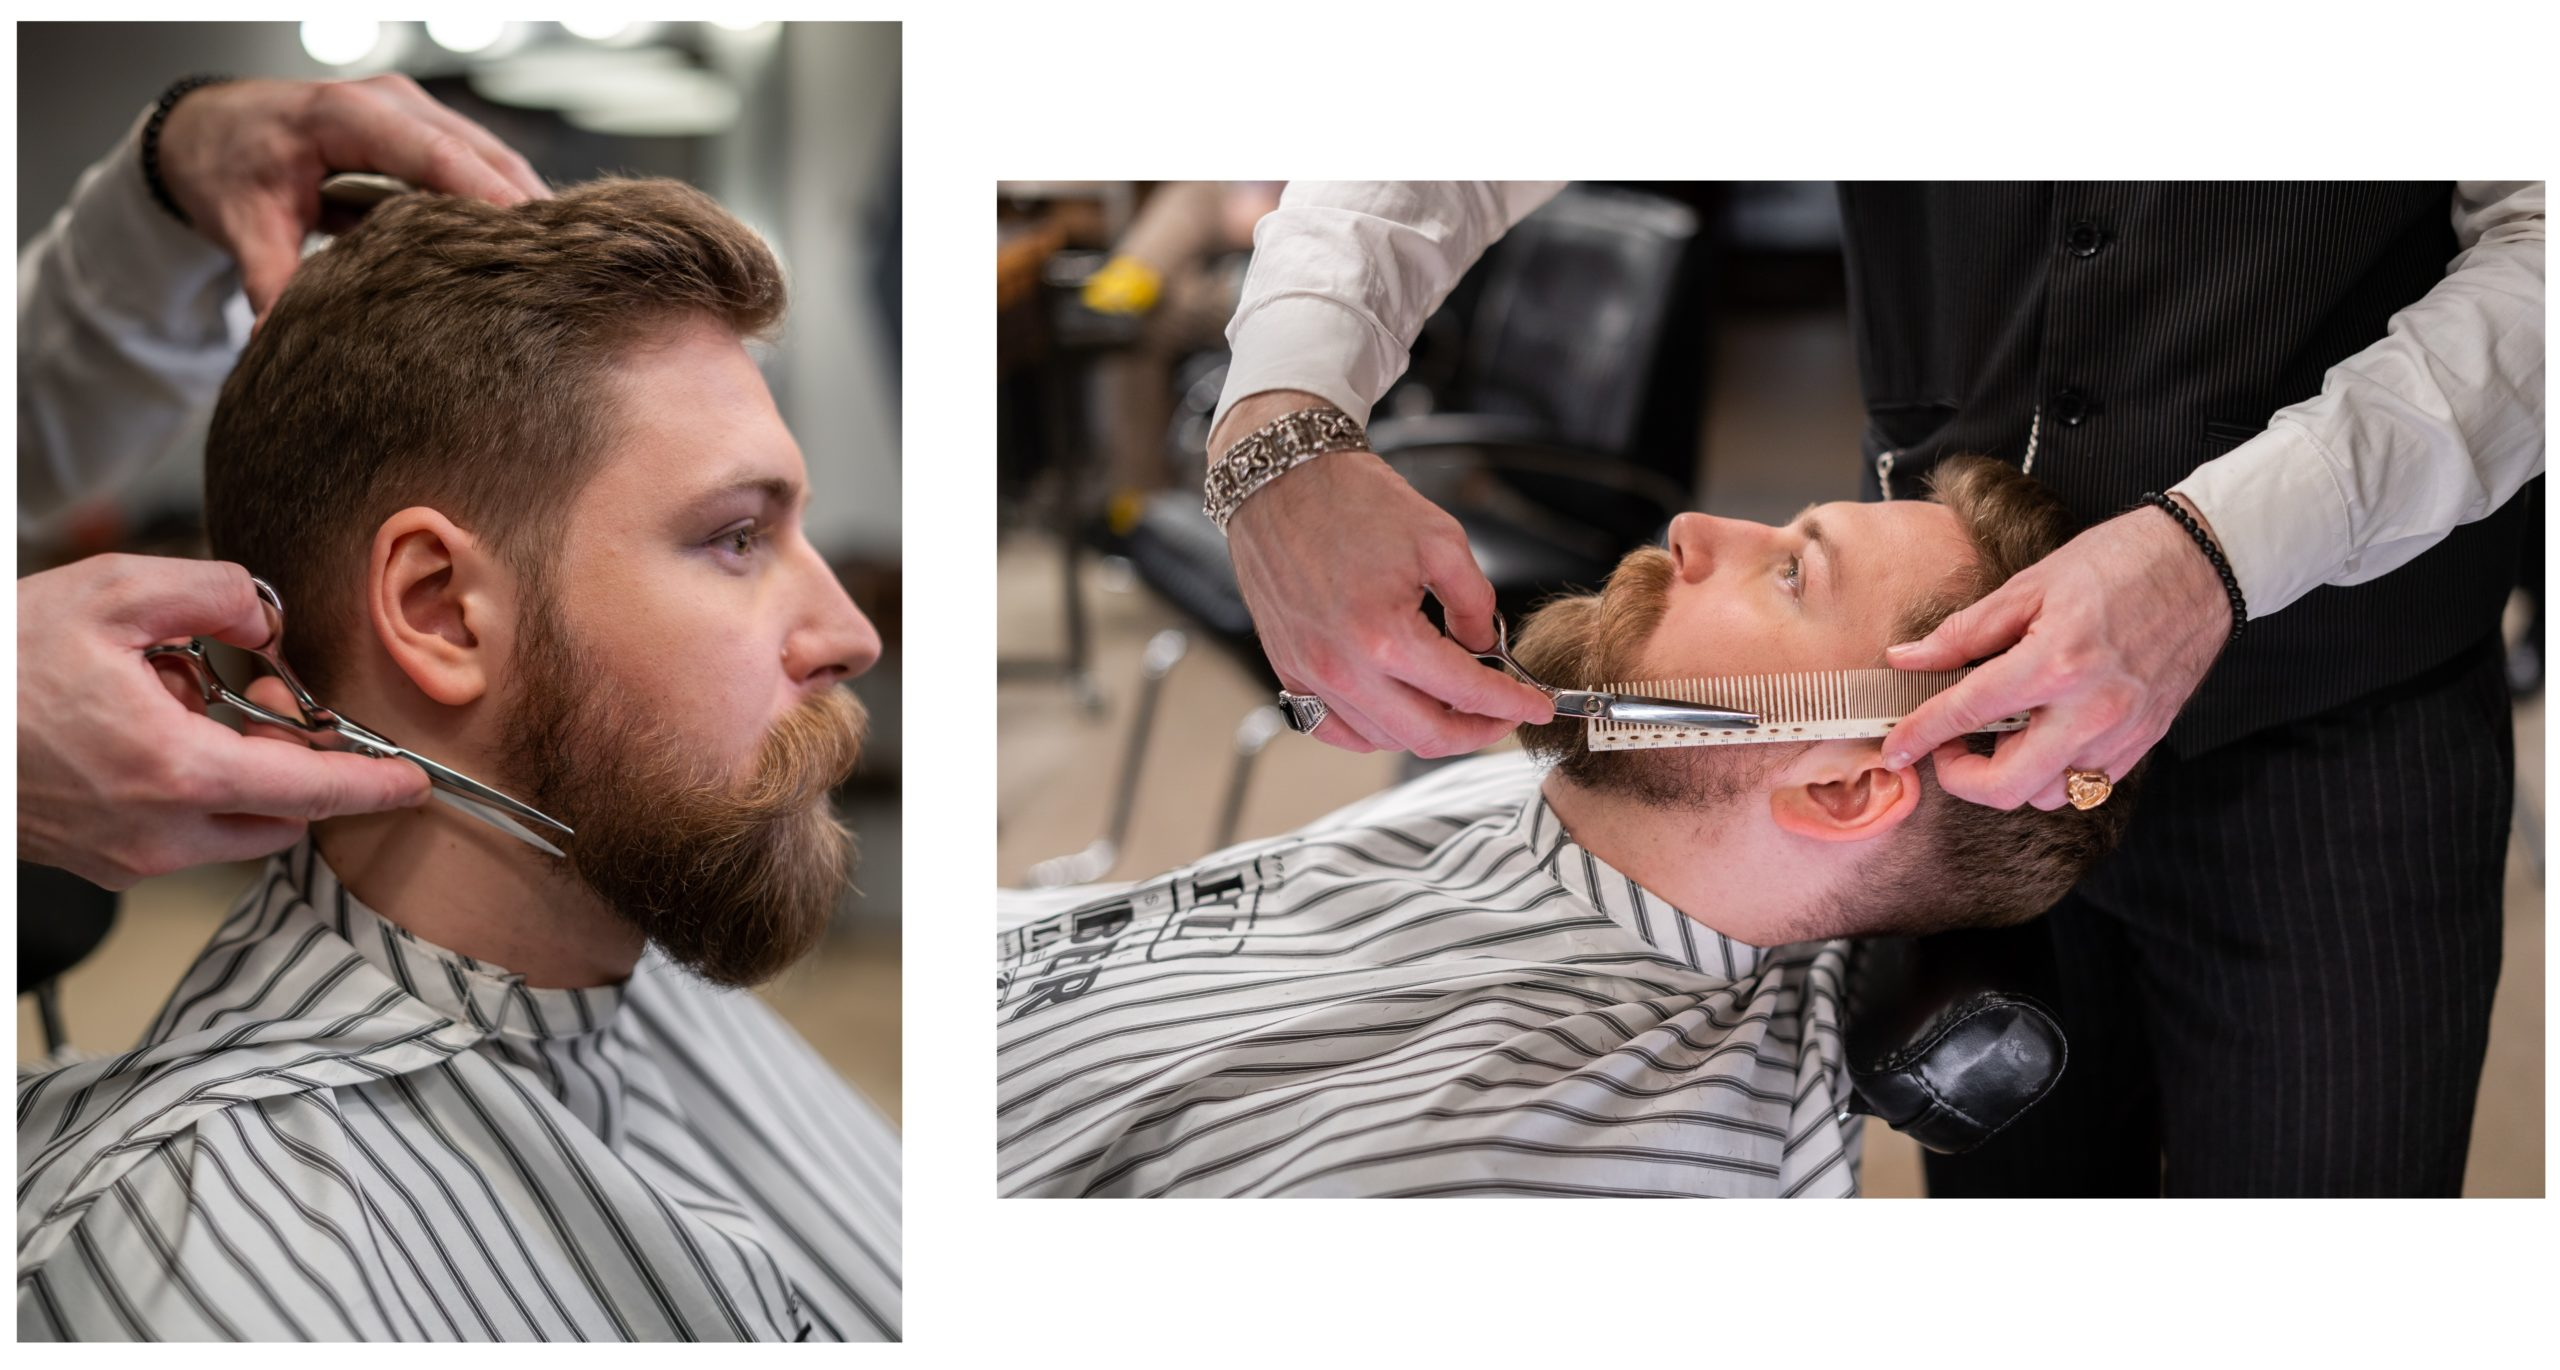 Shears and a comb are used to trim the sides of a client's beard.